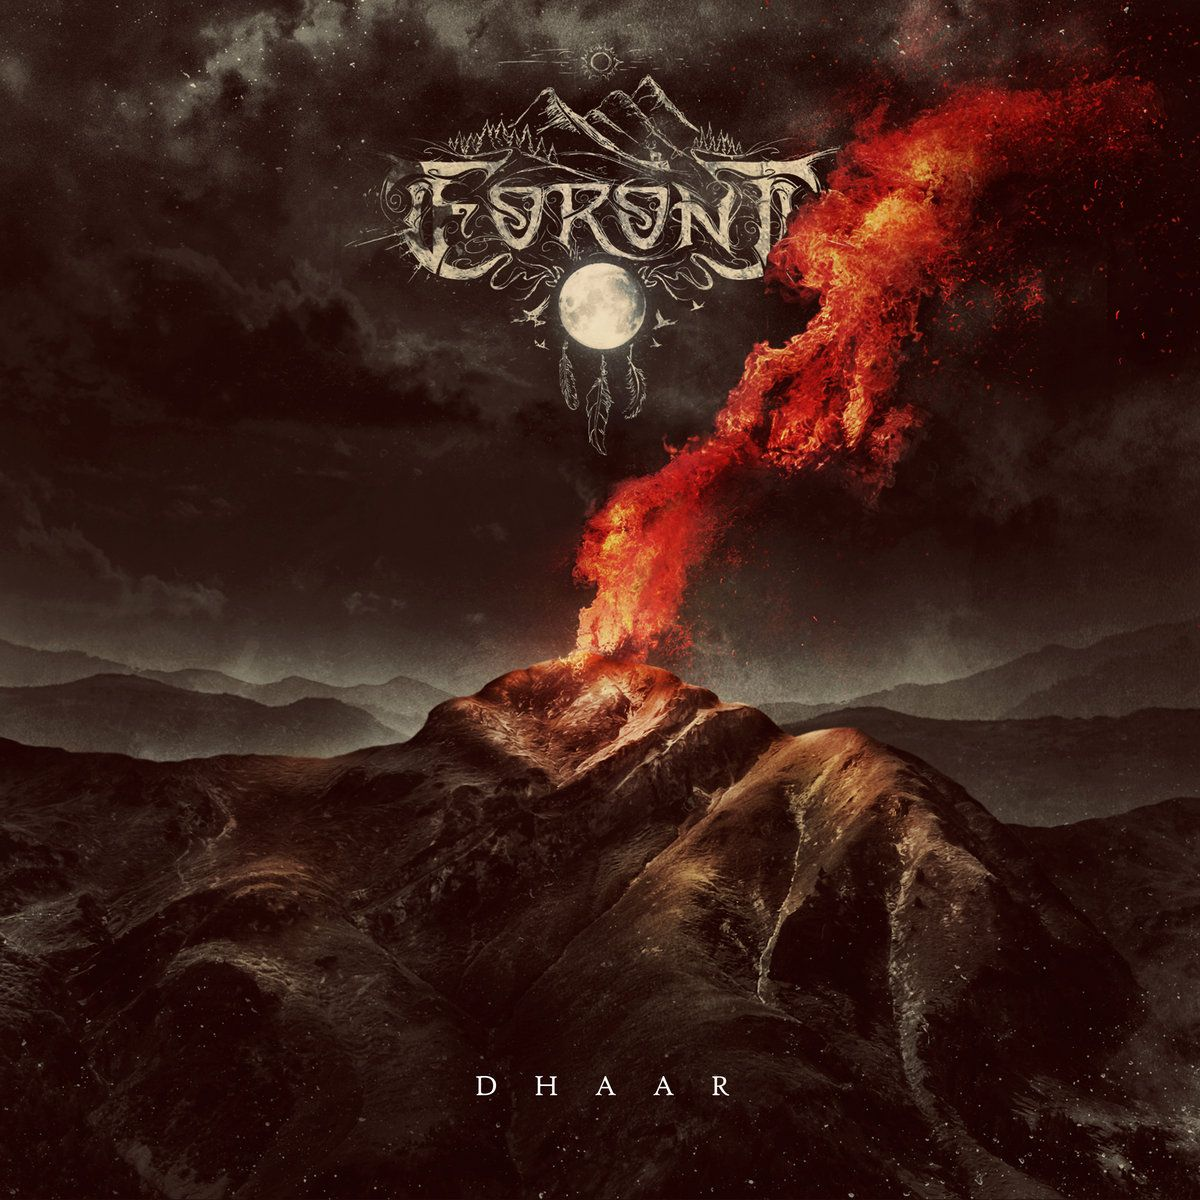 Review for Eoront - Д'хаар